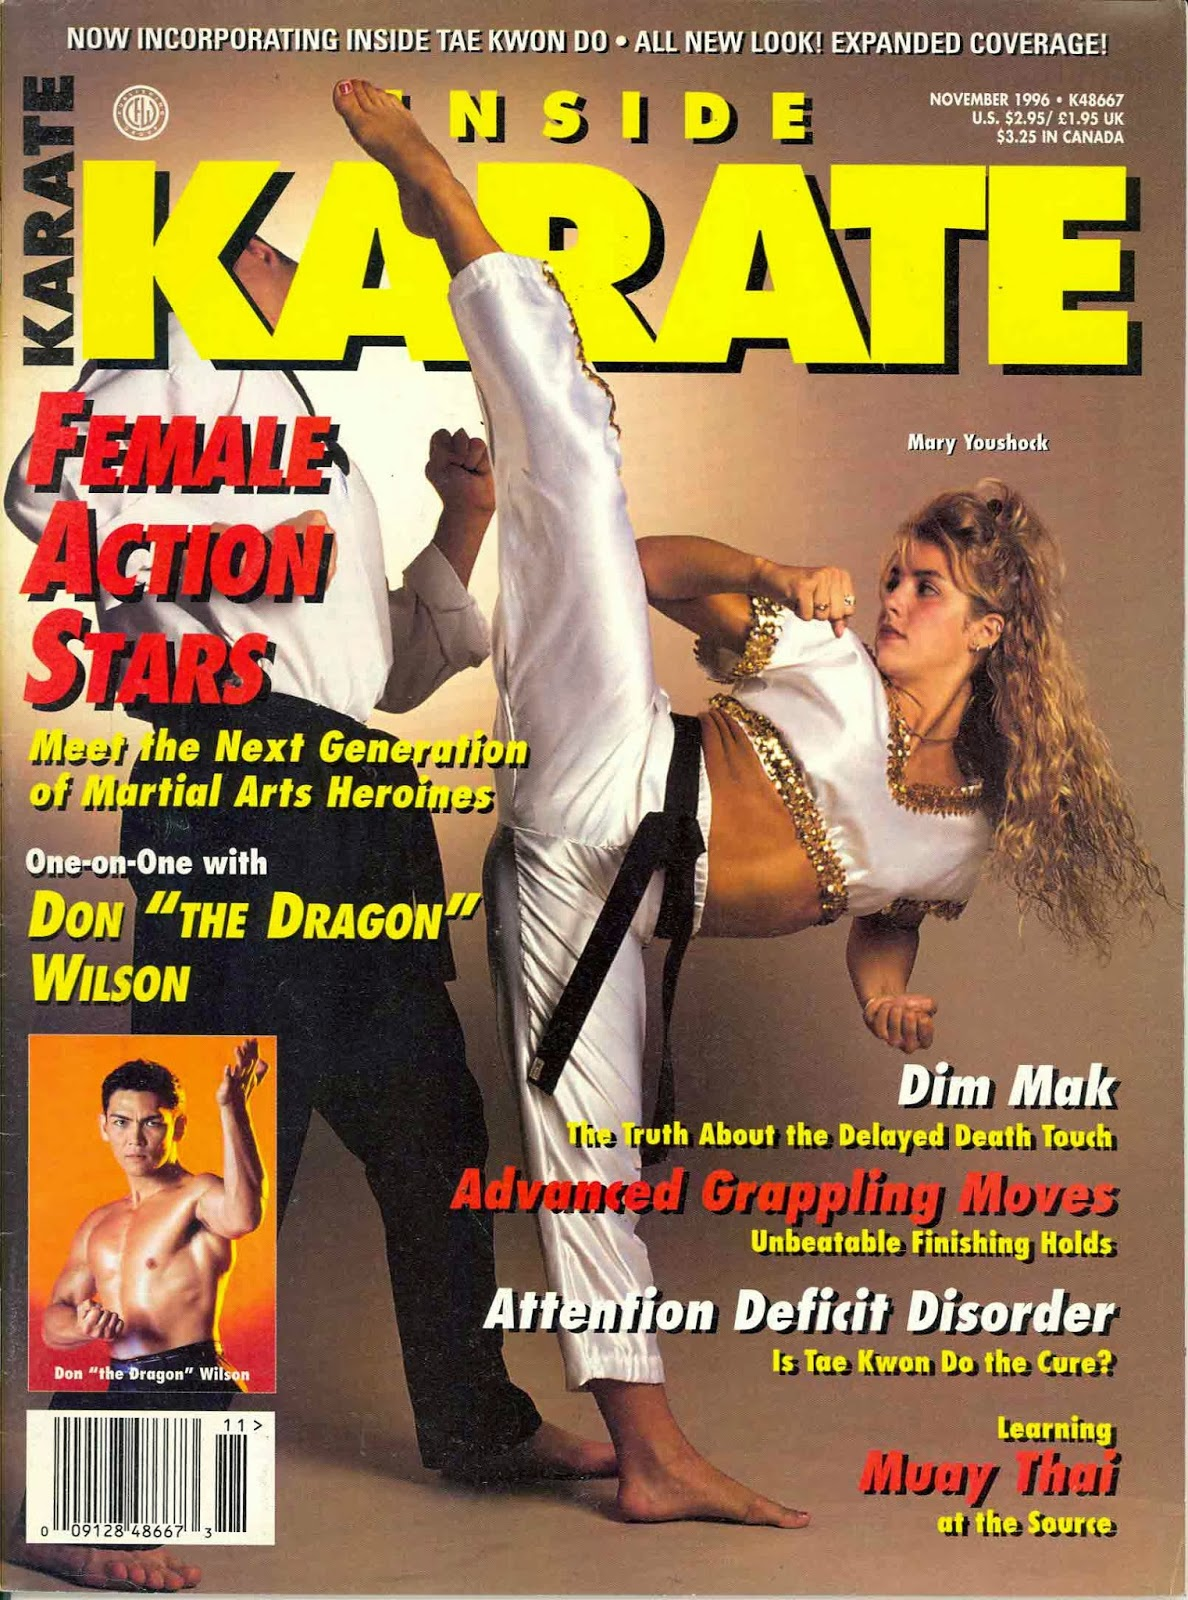 Exceptionnel ARE YOU BAD ENOUGH?: Top 10 Covers of Inside Karate Magazine: #6  UU67